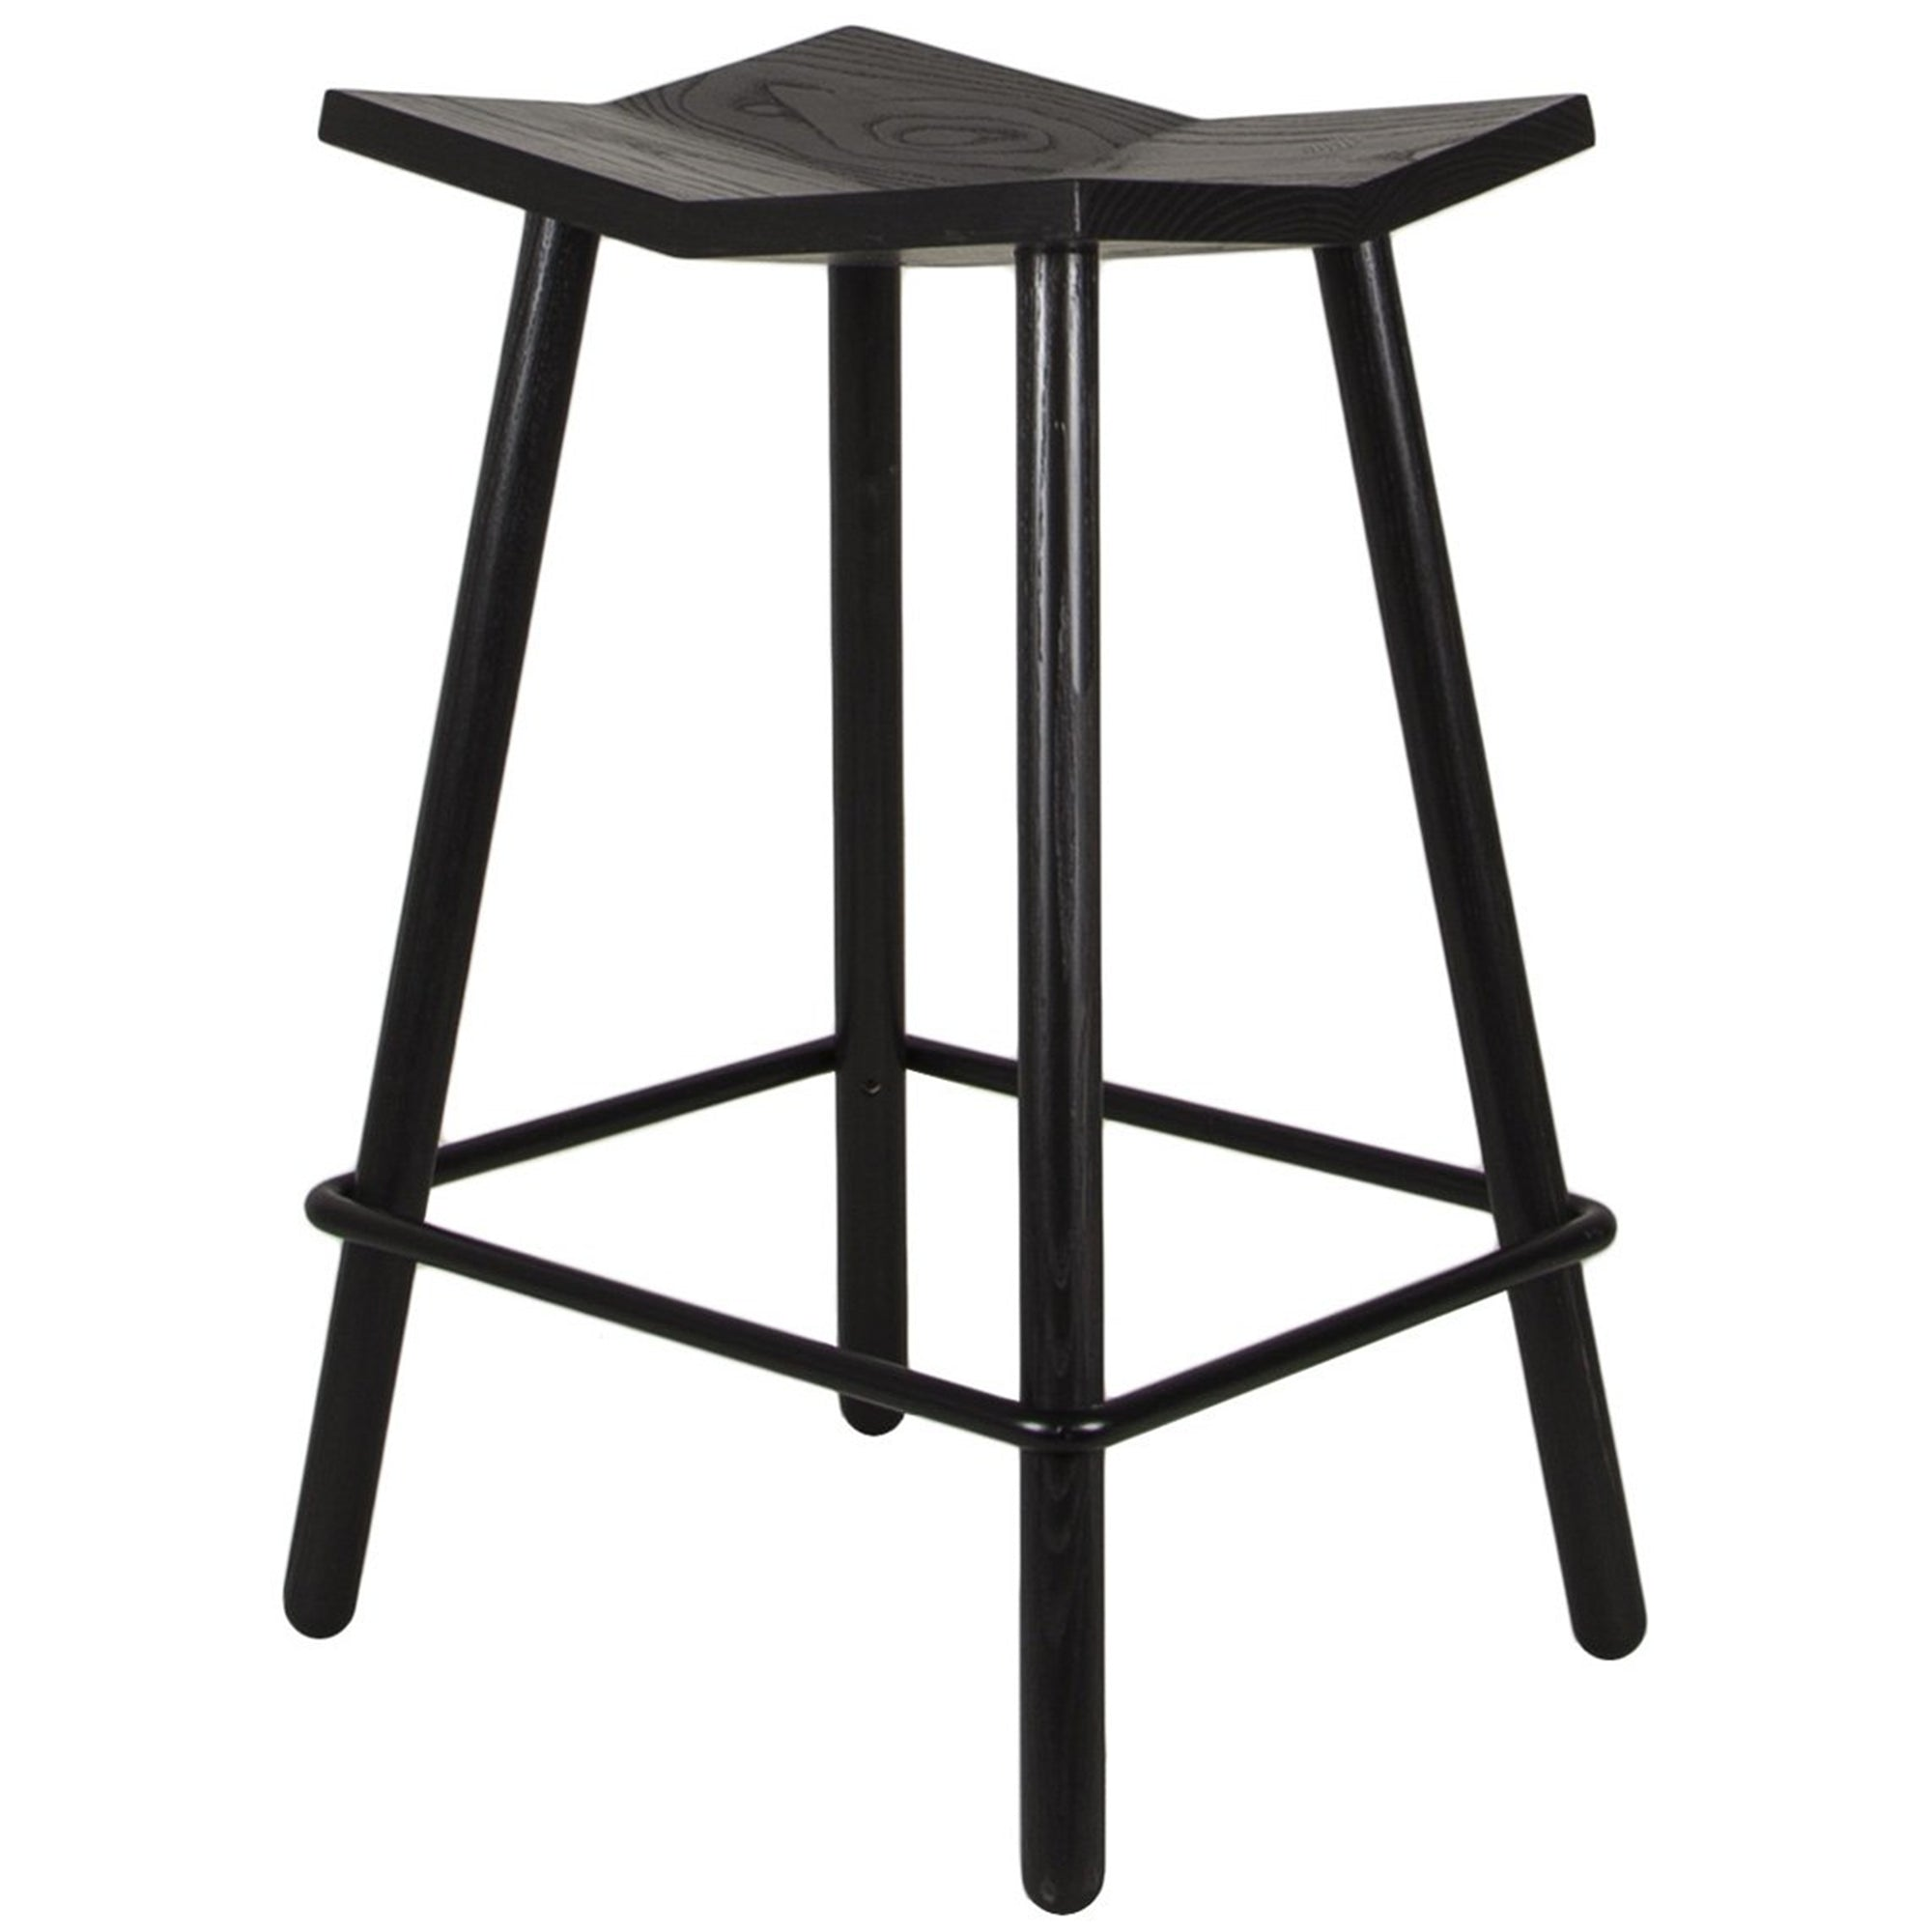 Mitre Footstool: Black + Counter